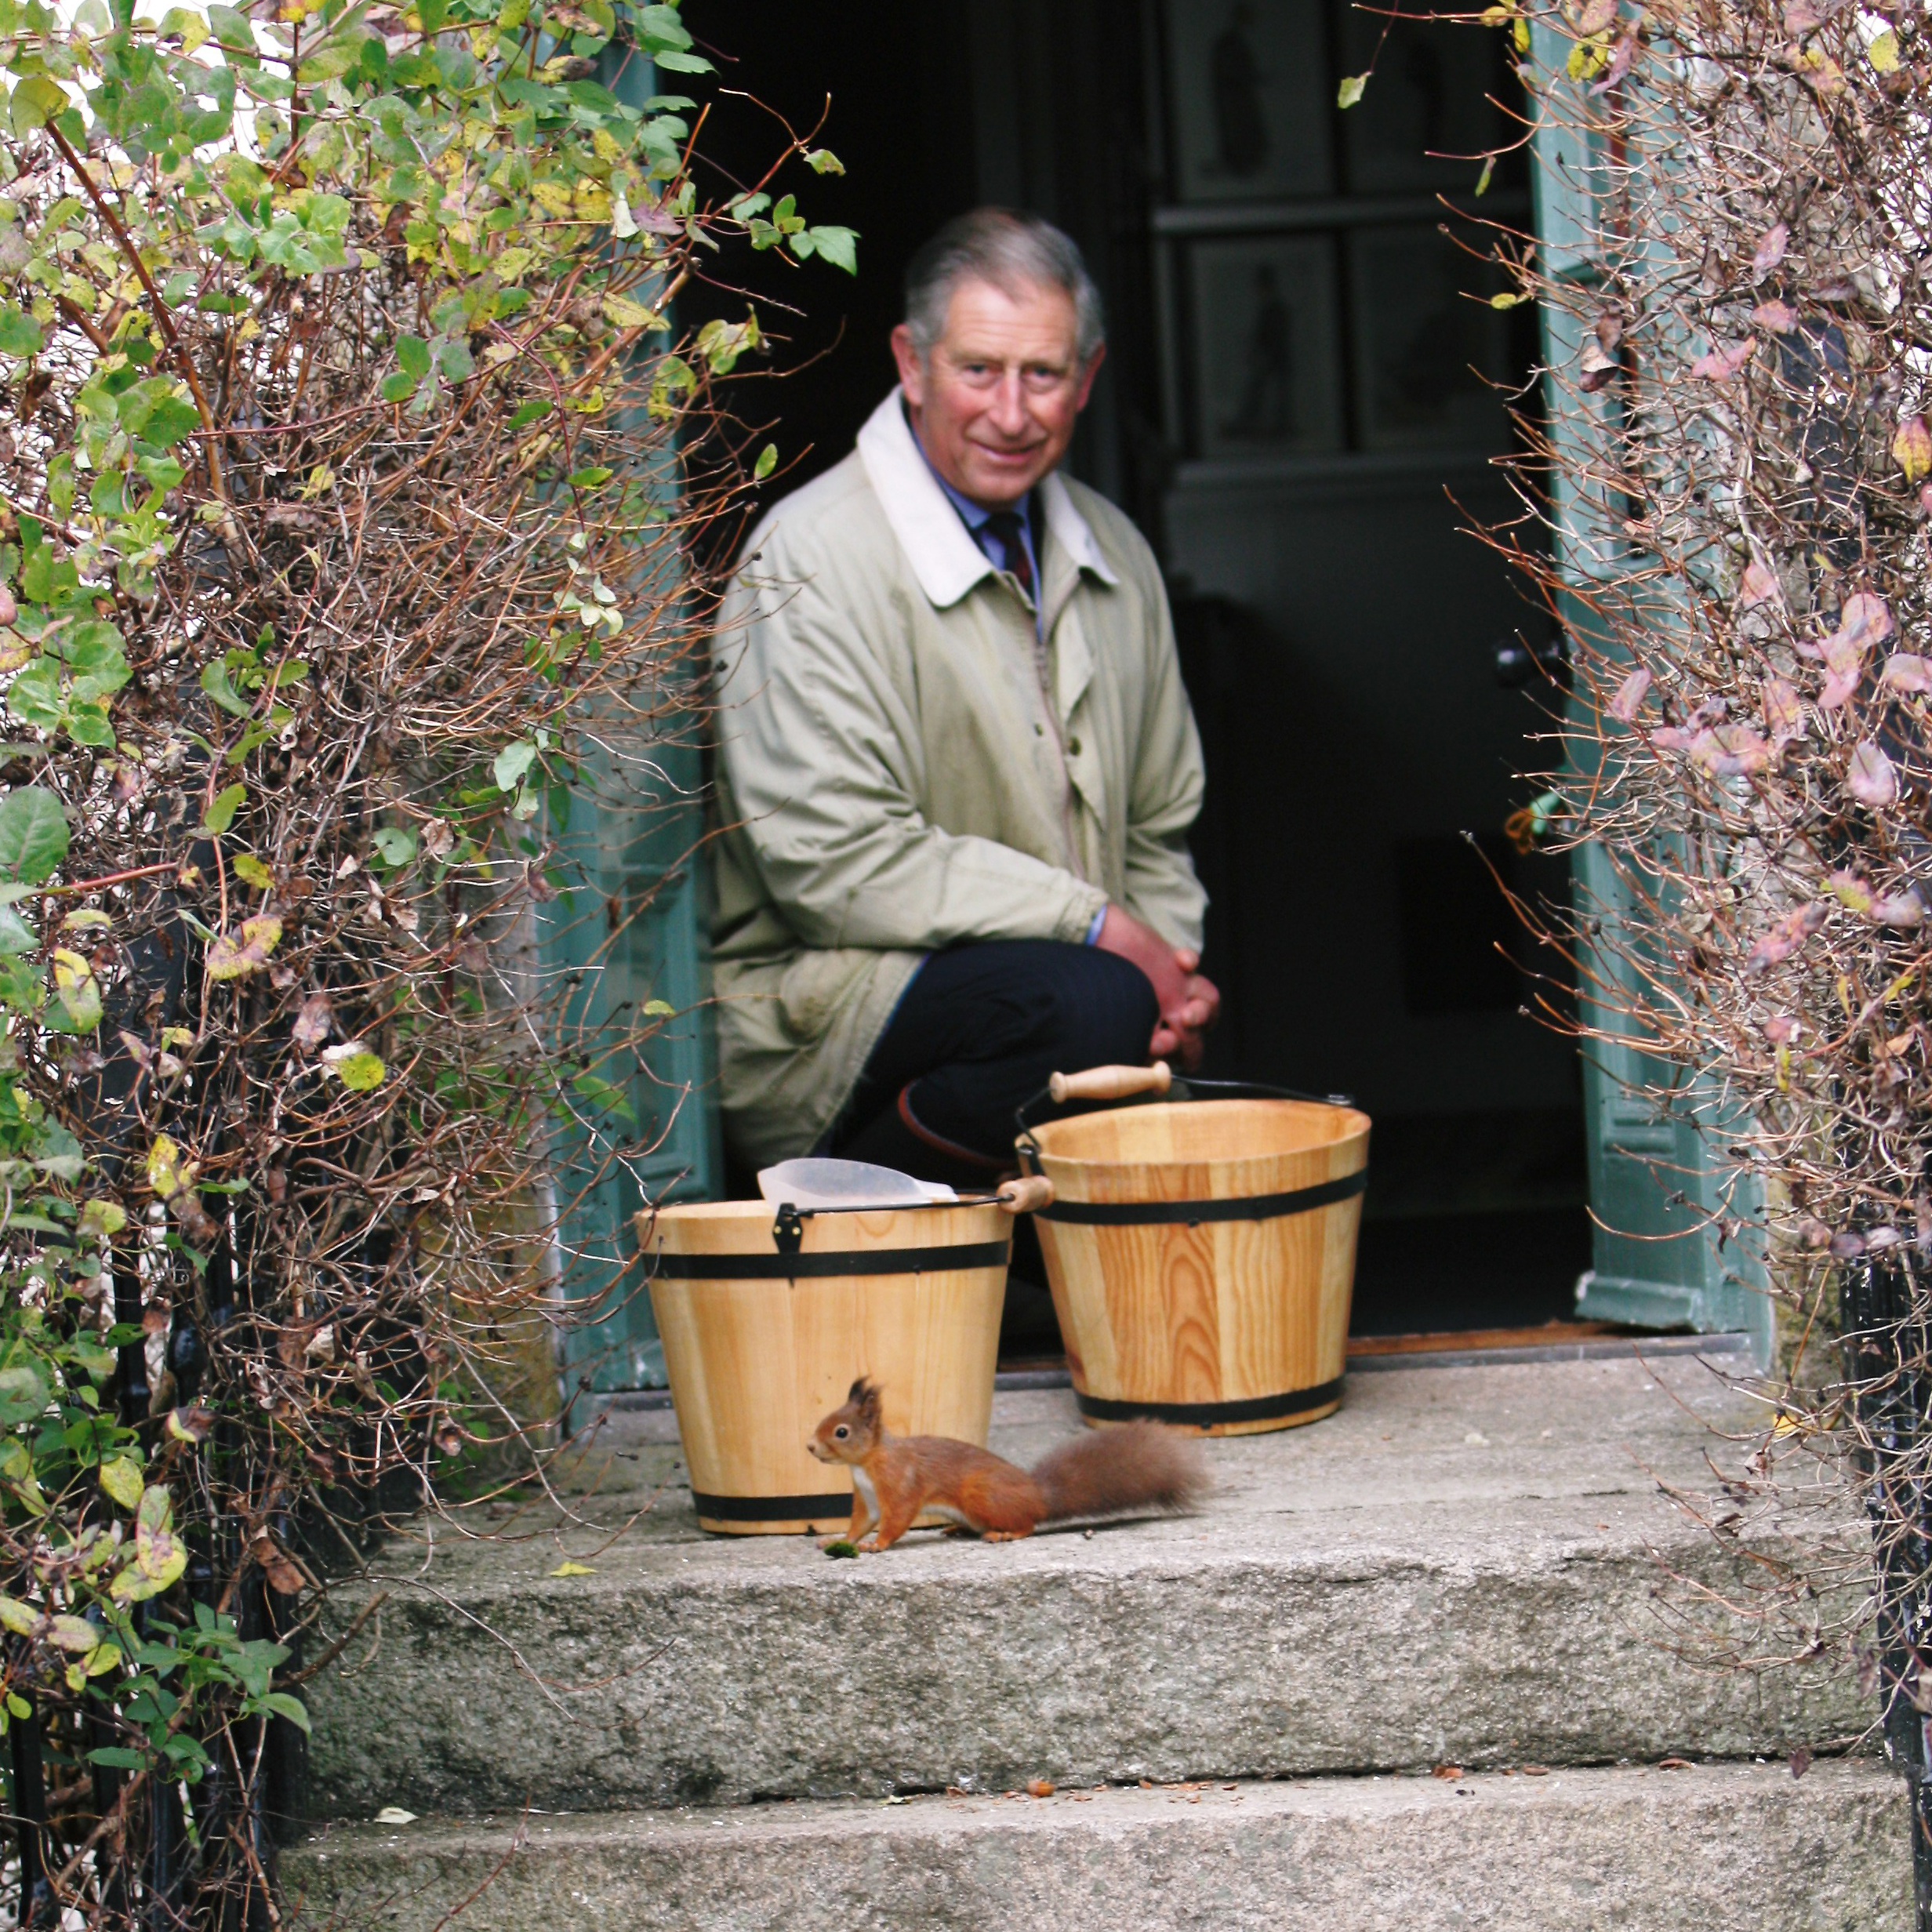 HRH The Prince of Wales gives special thanks to volunteers on Red Squirrel Appreciation Day